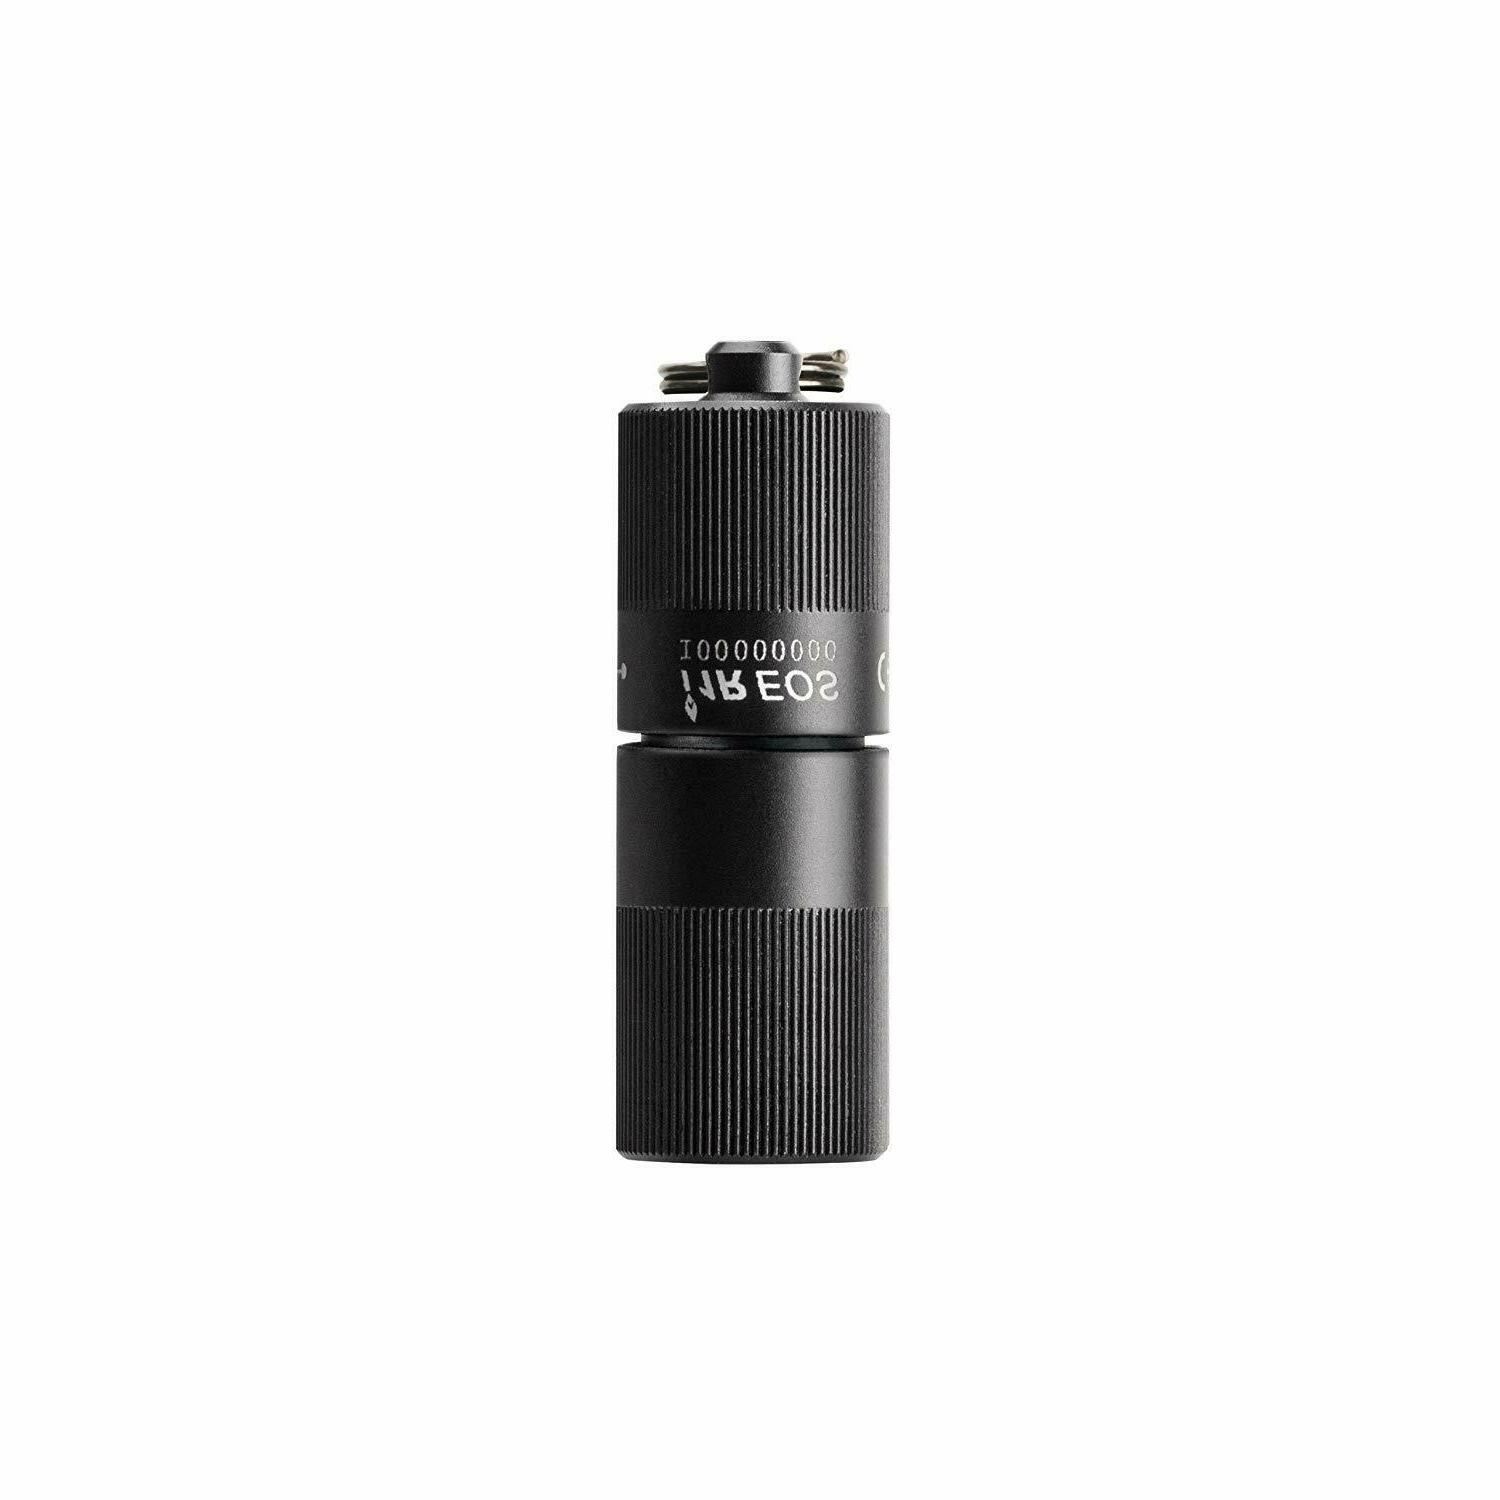 OLIGHT Lumens USB Flashlight